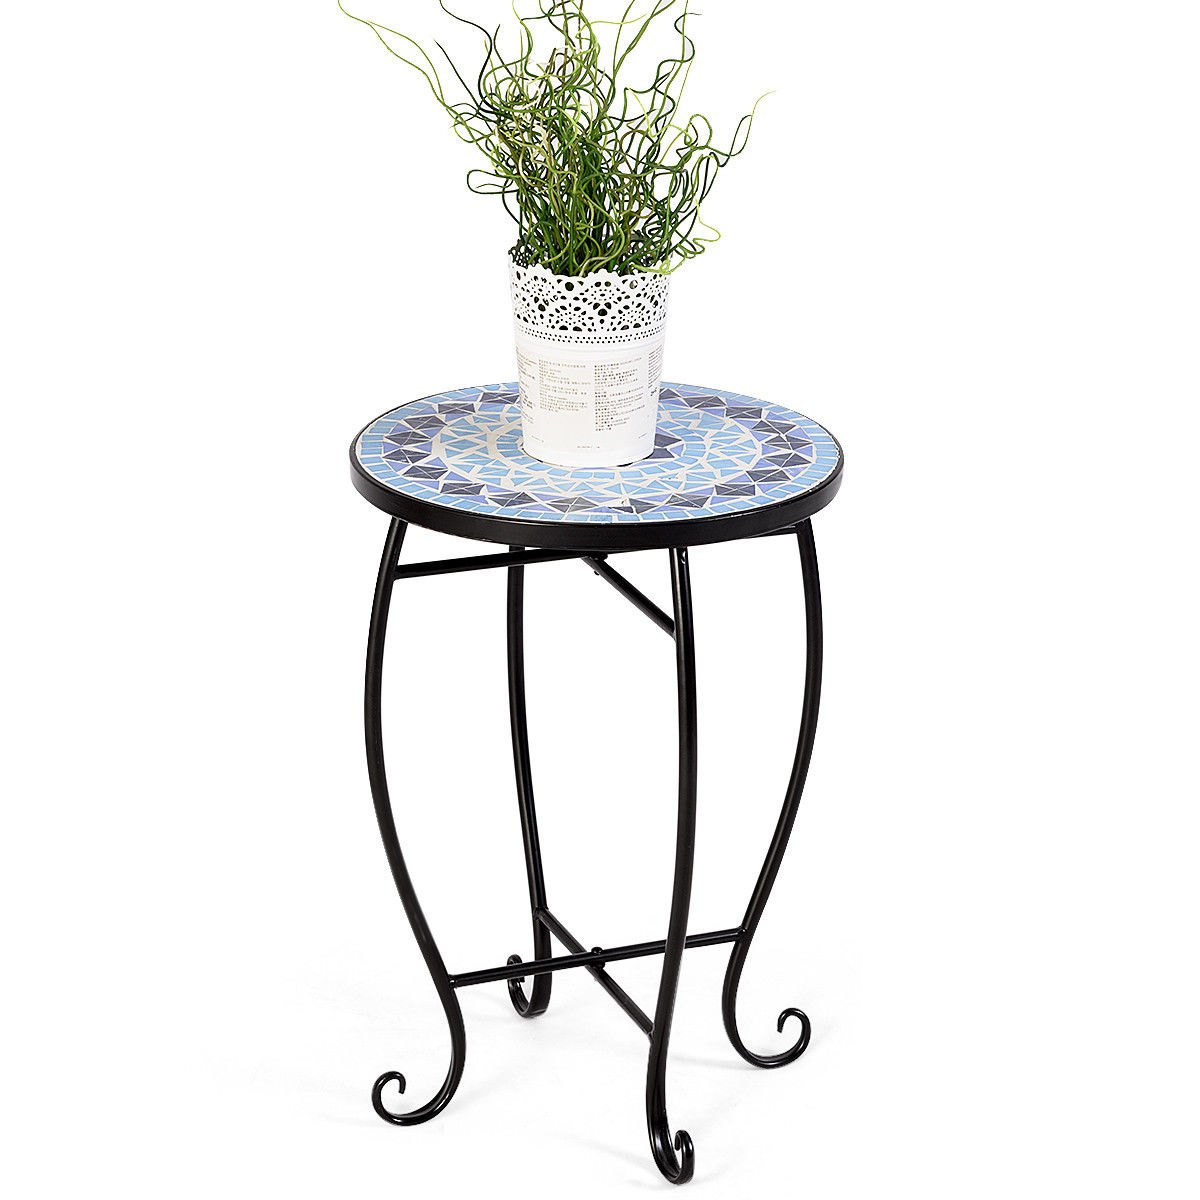 way outdoor indoor accent table plant stand cobalt blue color scheme garden steel metal coffee set wine cabinet office furniture portland college dorm with wheels vintage drop